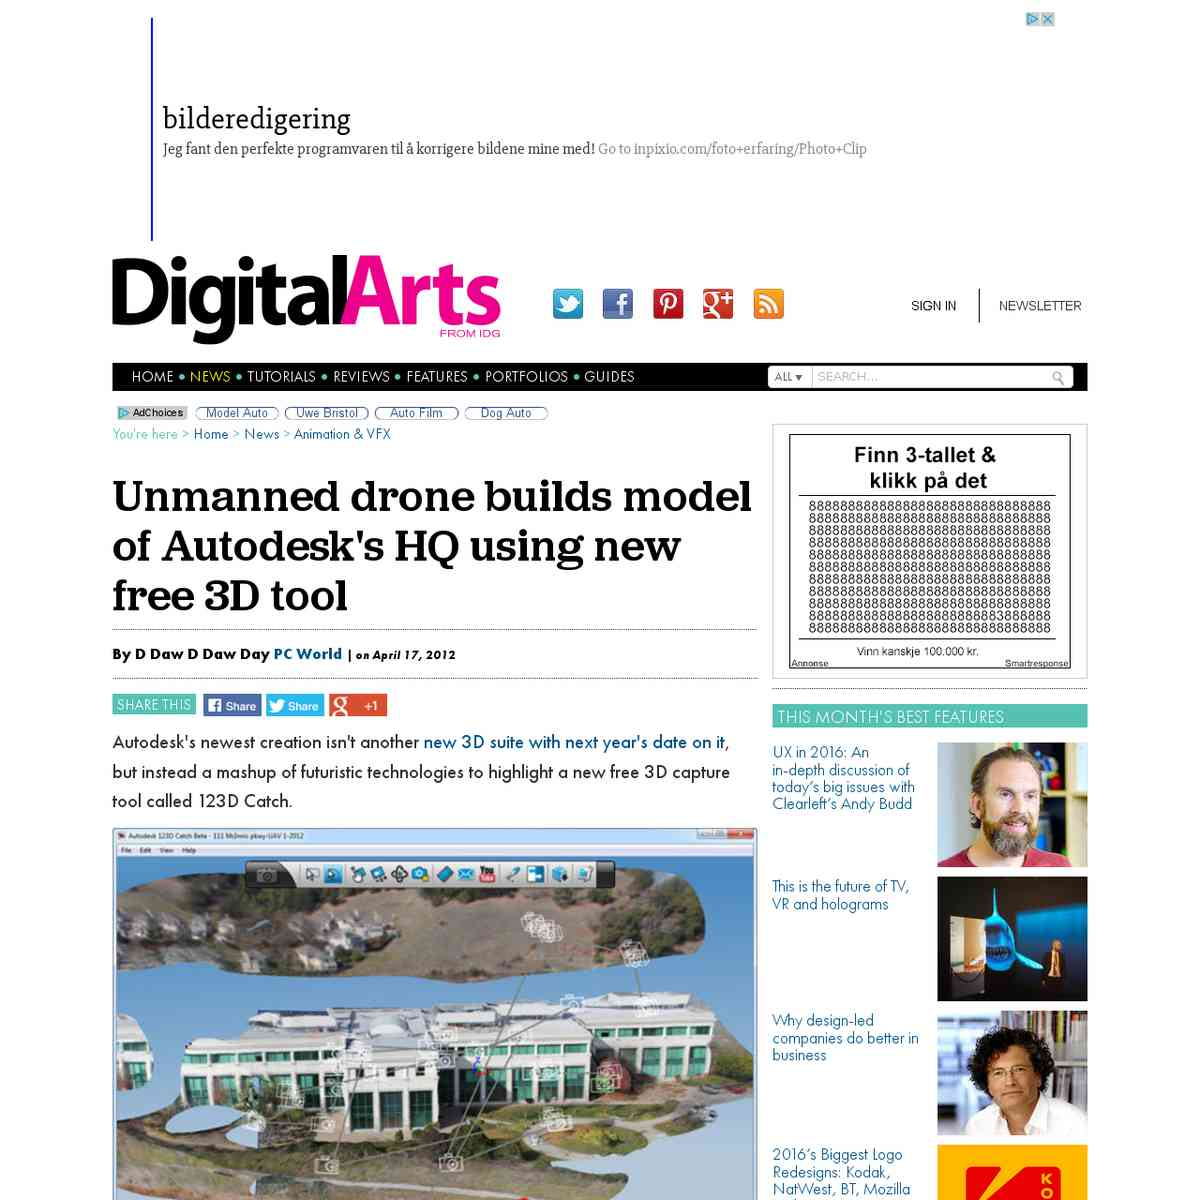 digitalartsonline.co.uk/news/motion-graphics/unmanned-drone-builds-model-of-autodesks-hq-using-new-f